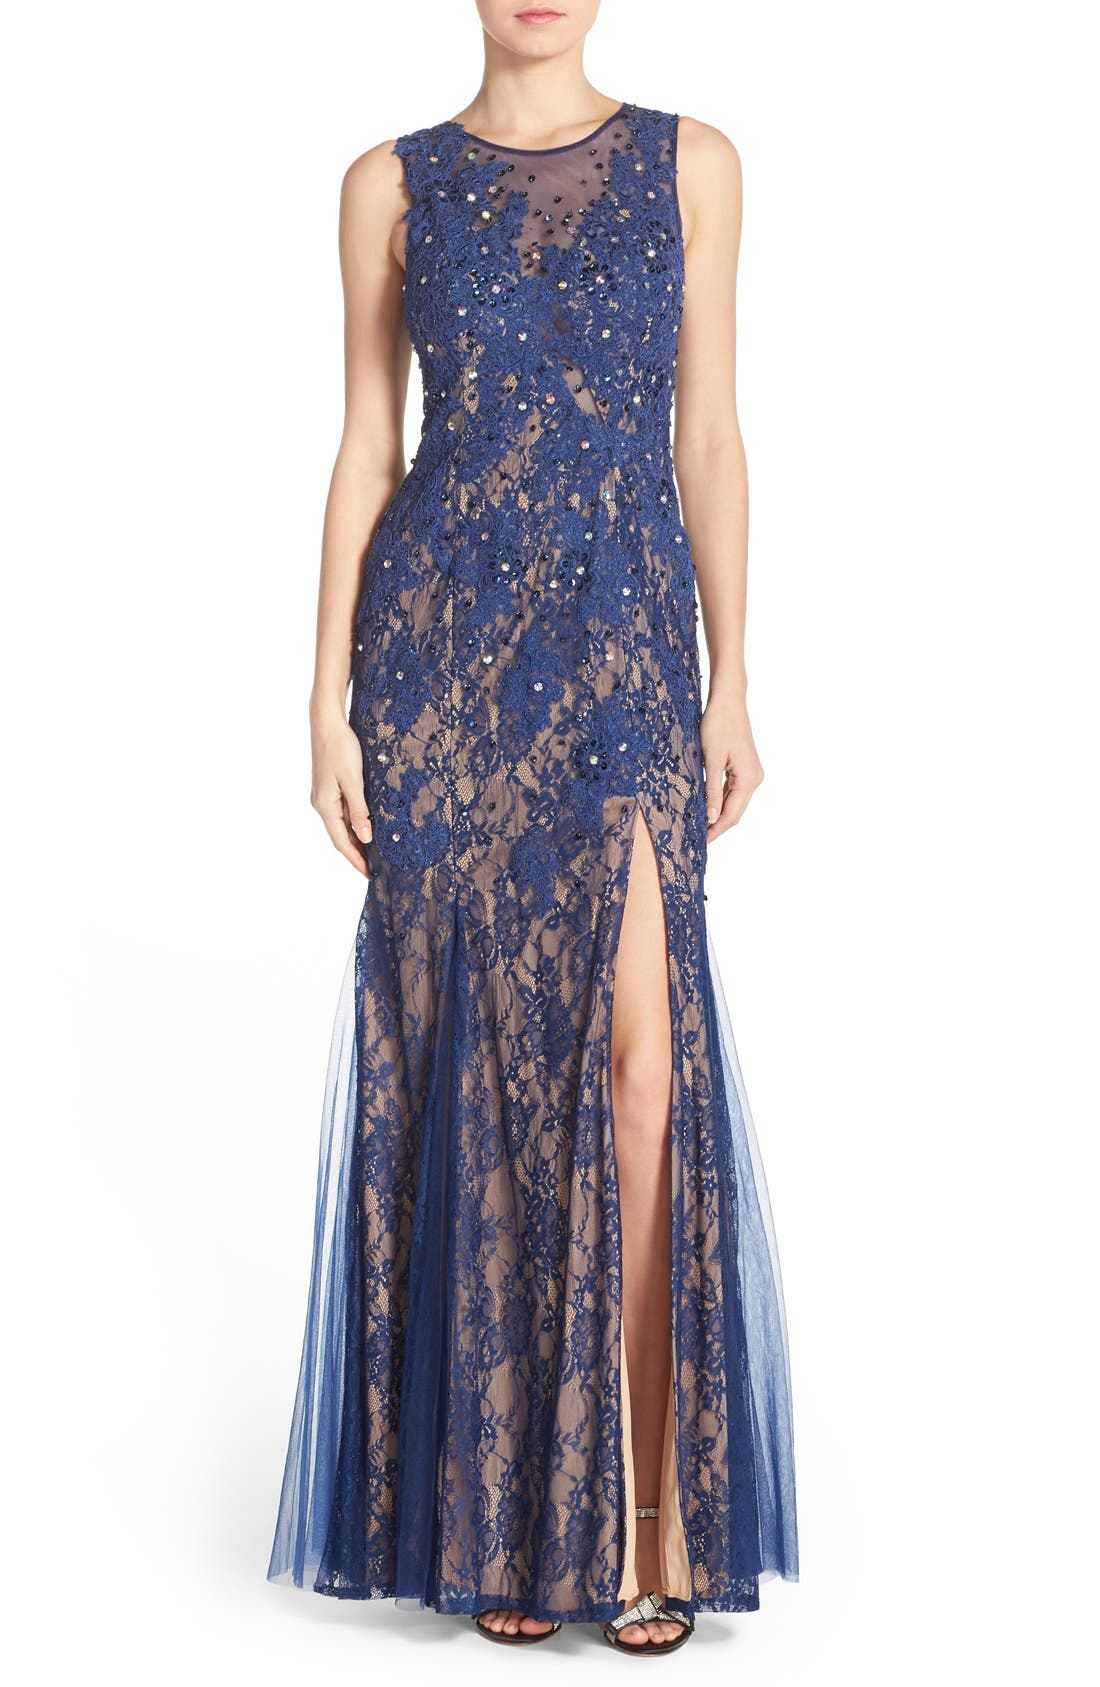 Alternate Image 1 Selected - Sean Collection Embellished Lace Gown